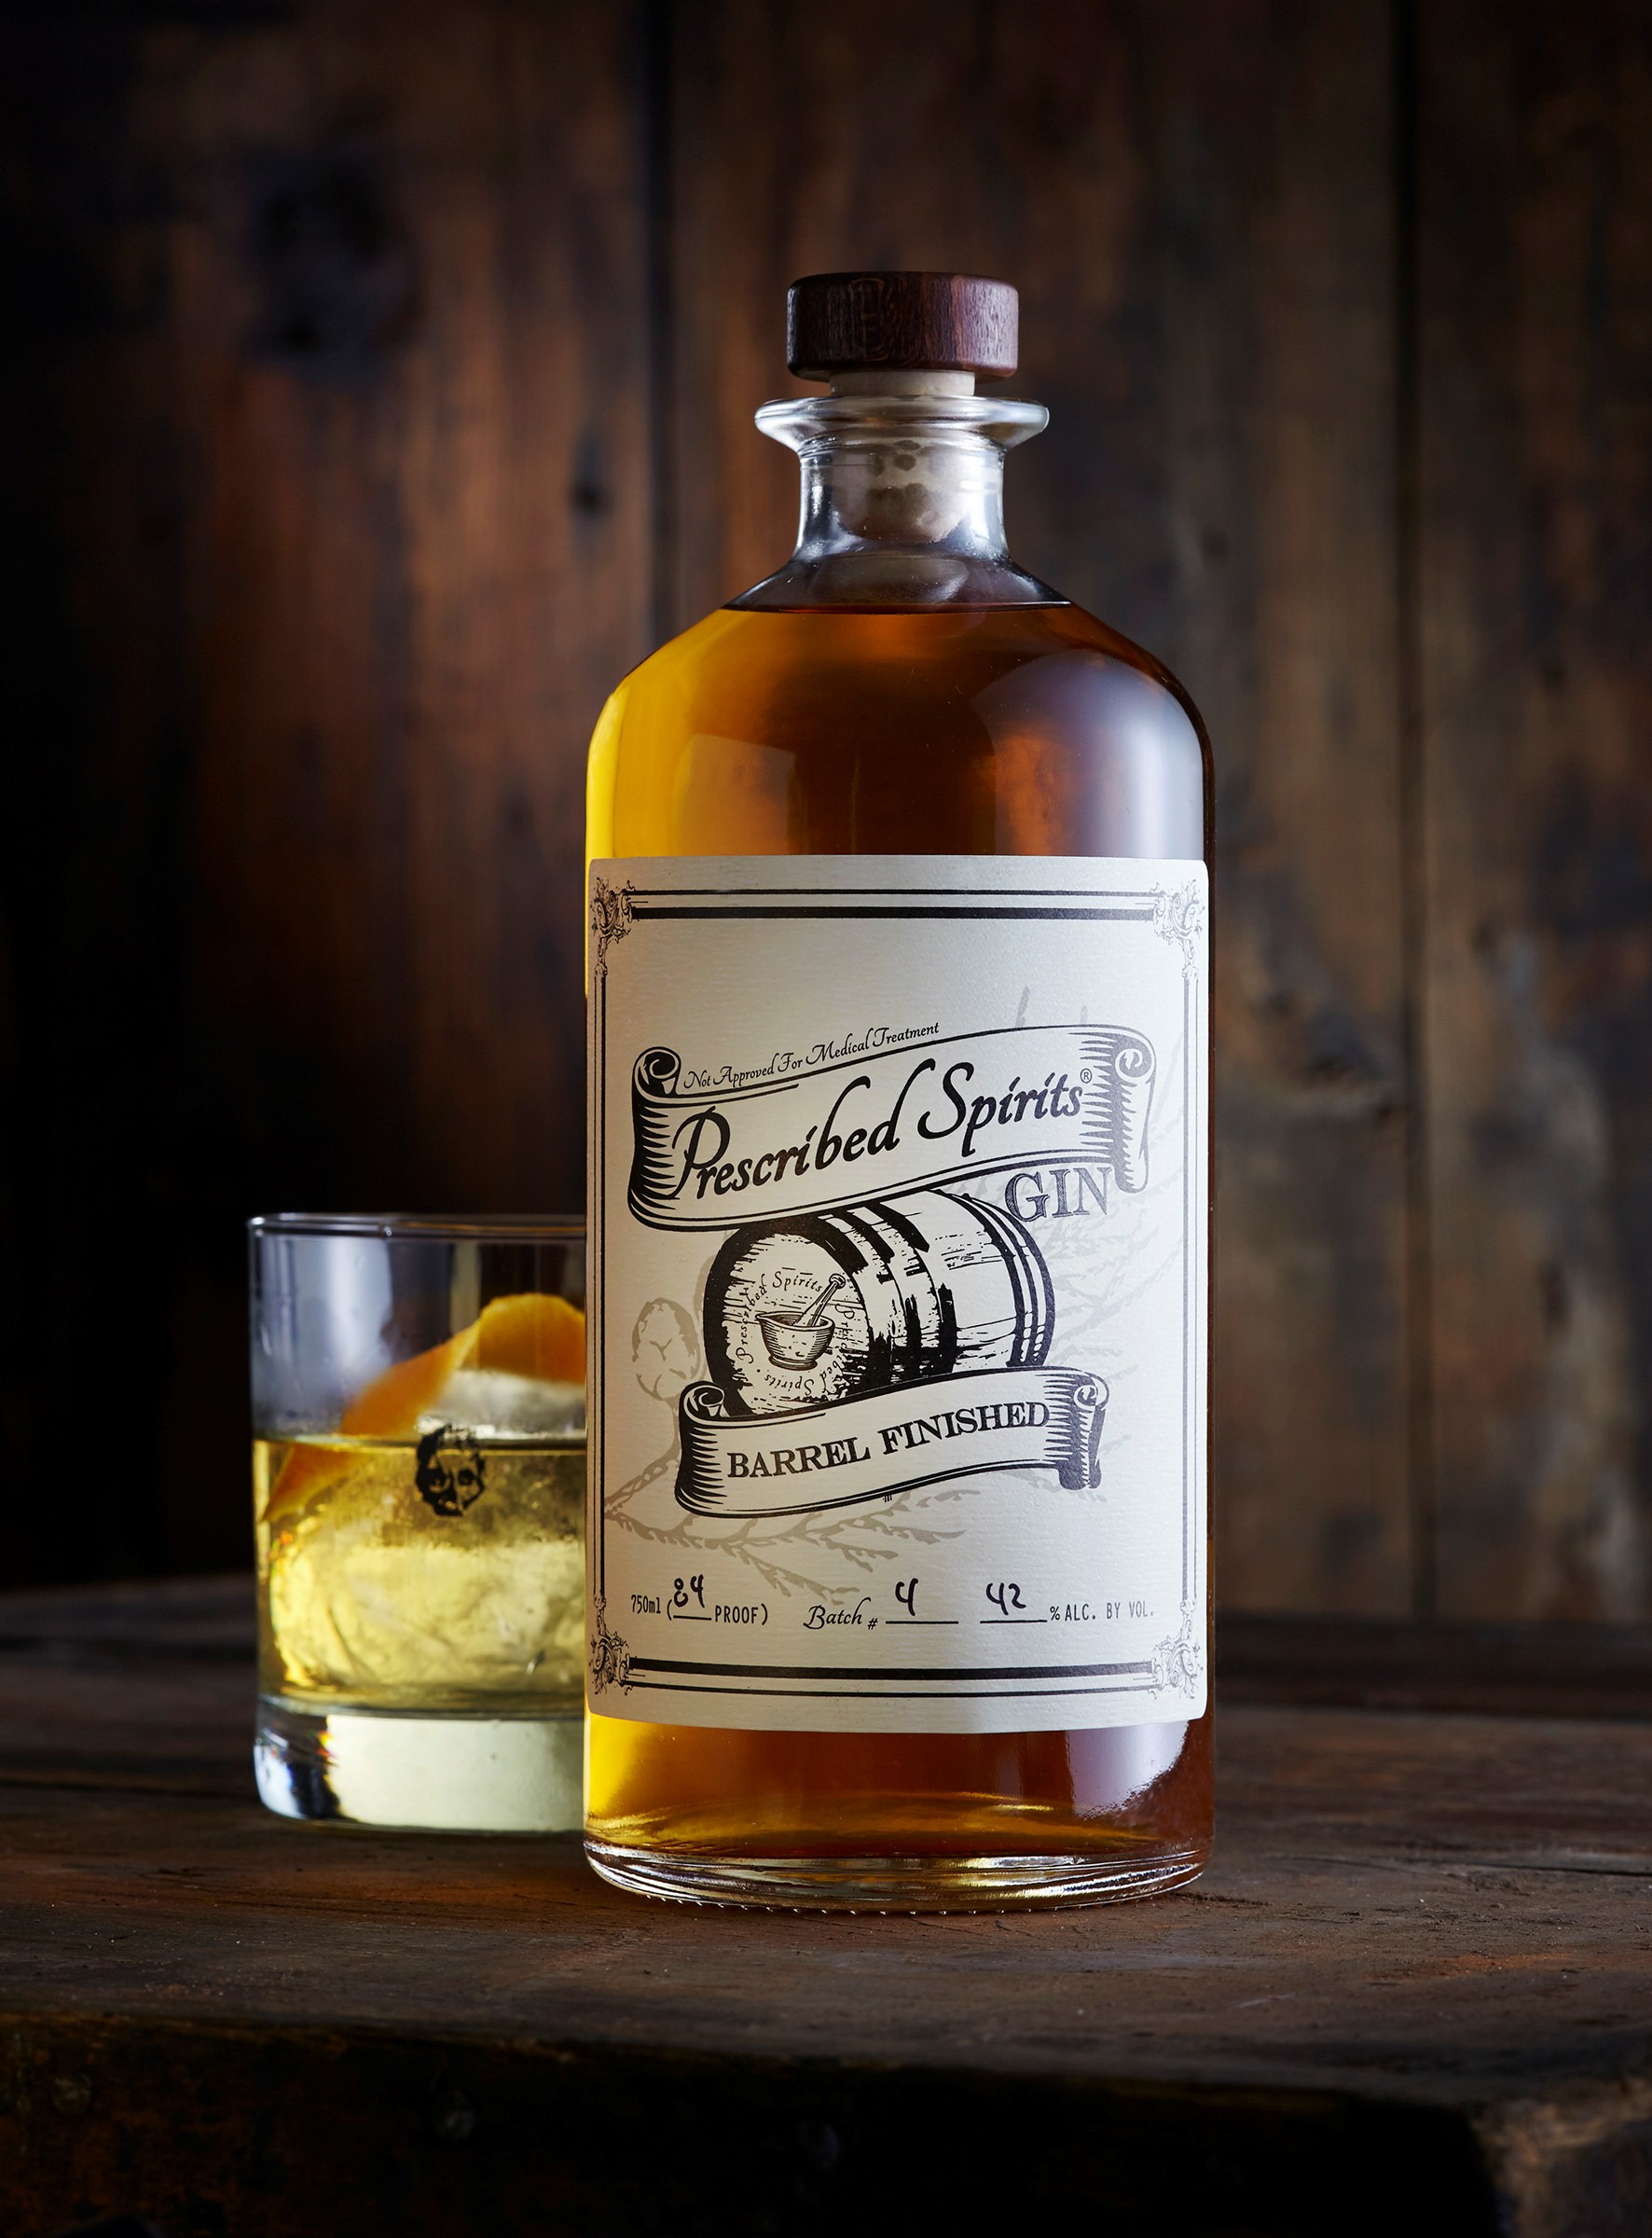 Wine Enthusiast: Prescribed Spirits Barrel Finished Gin